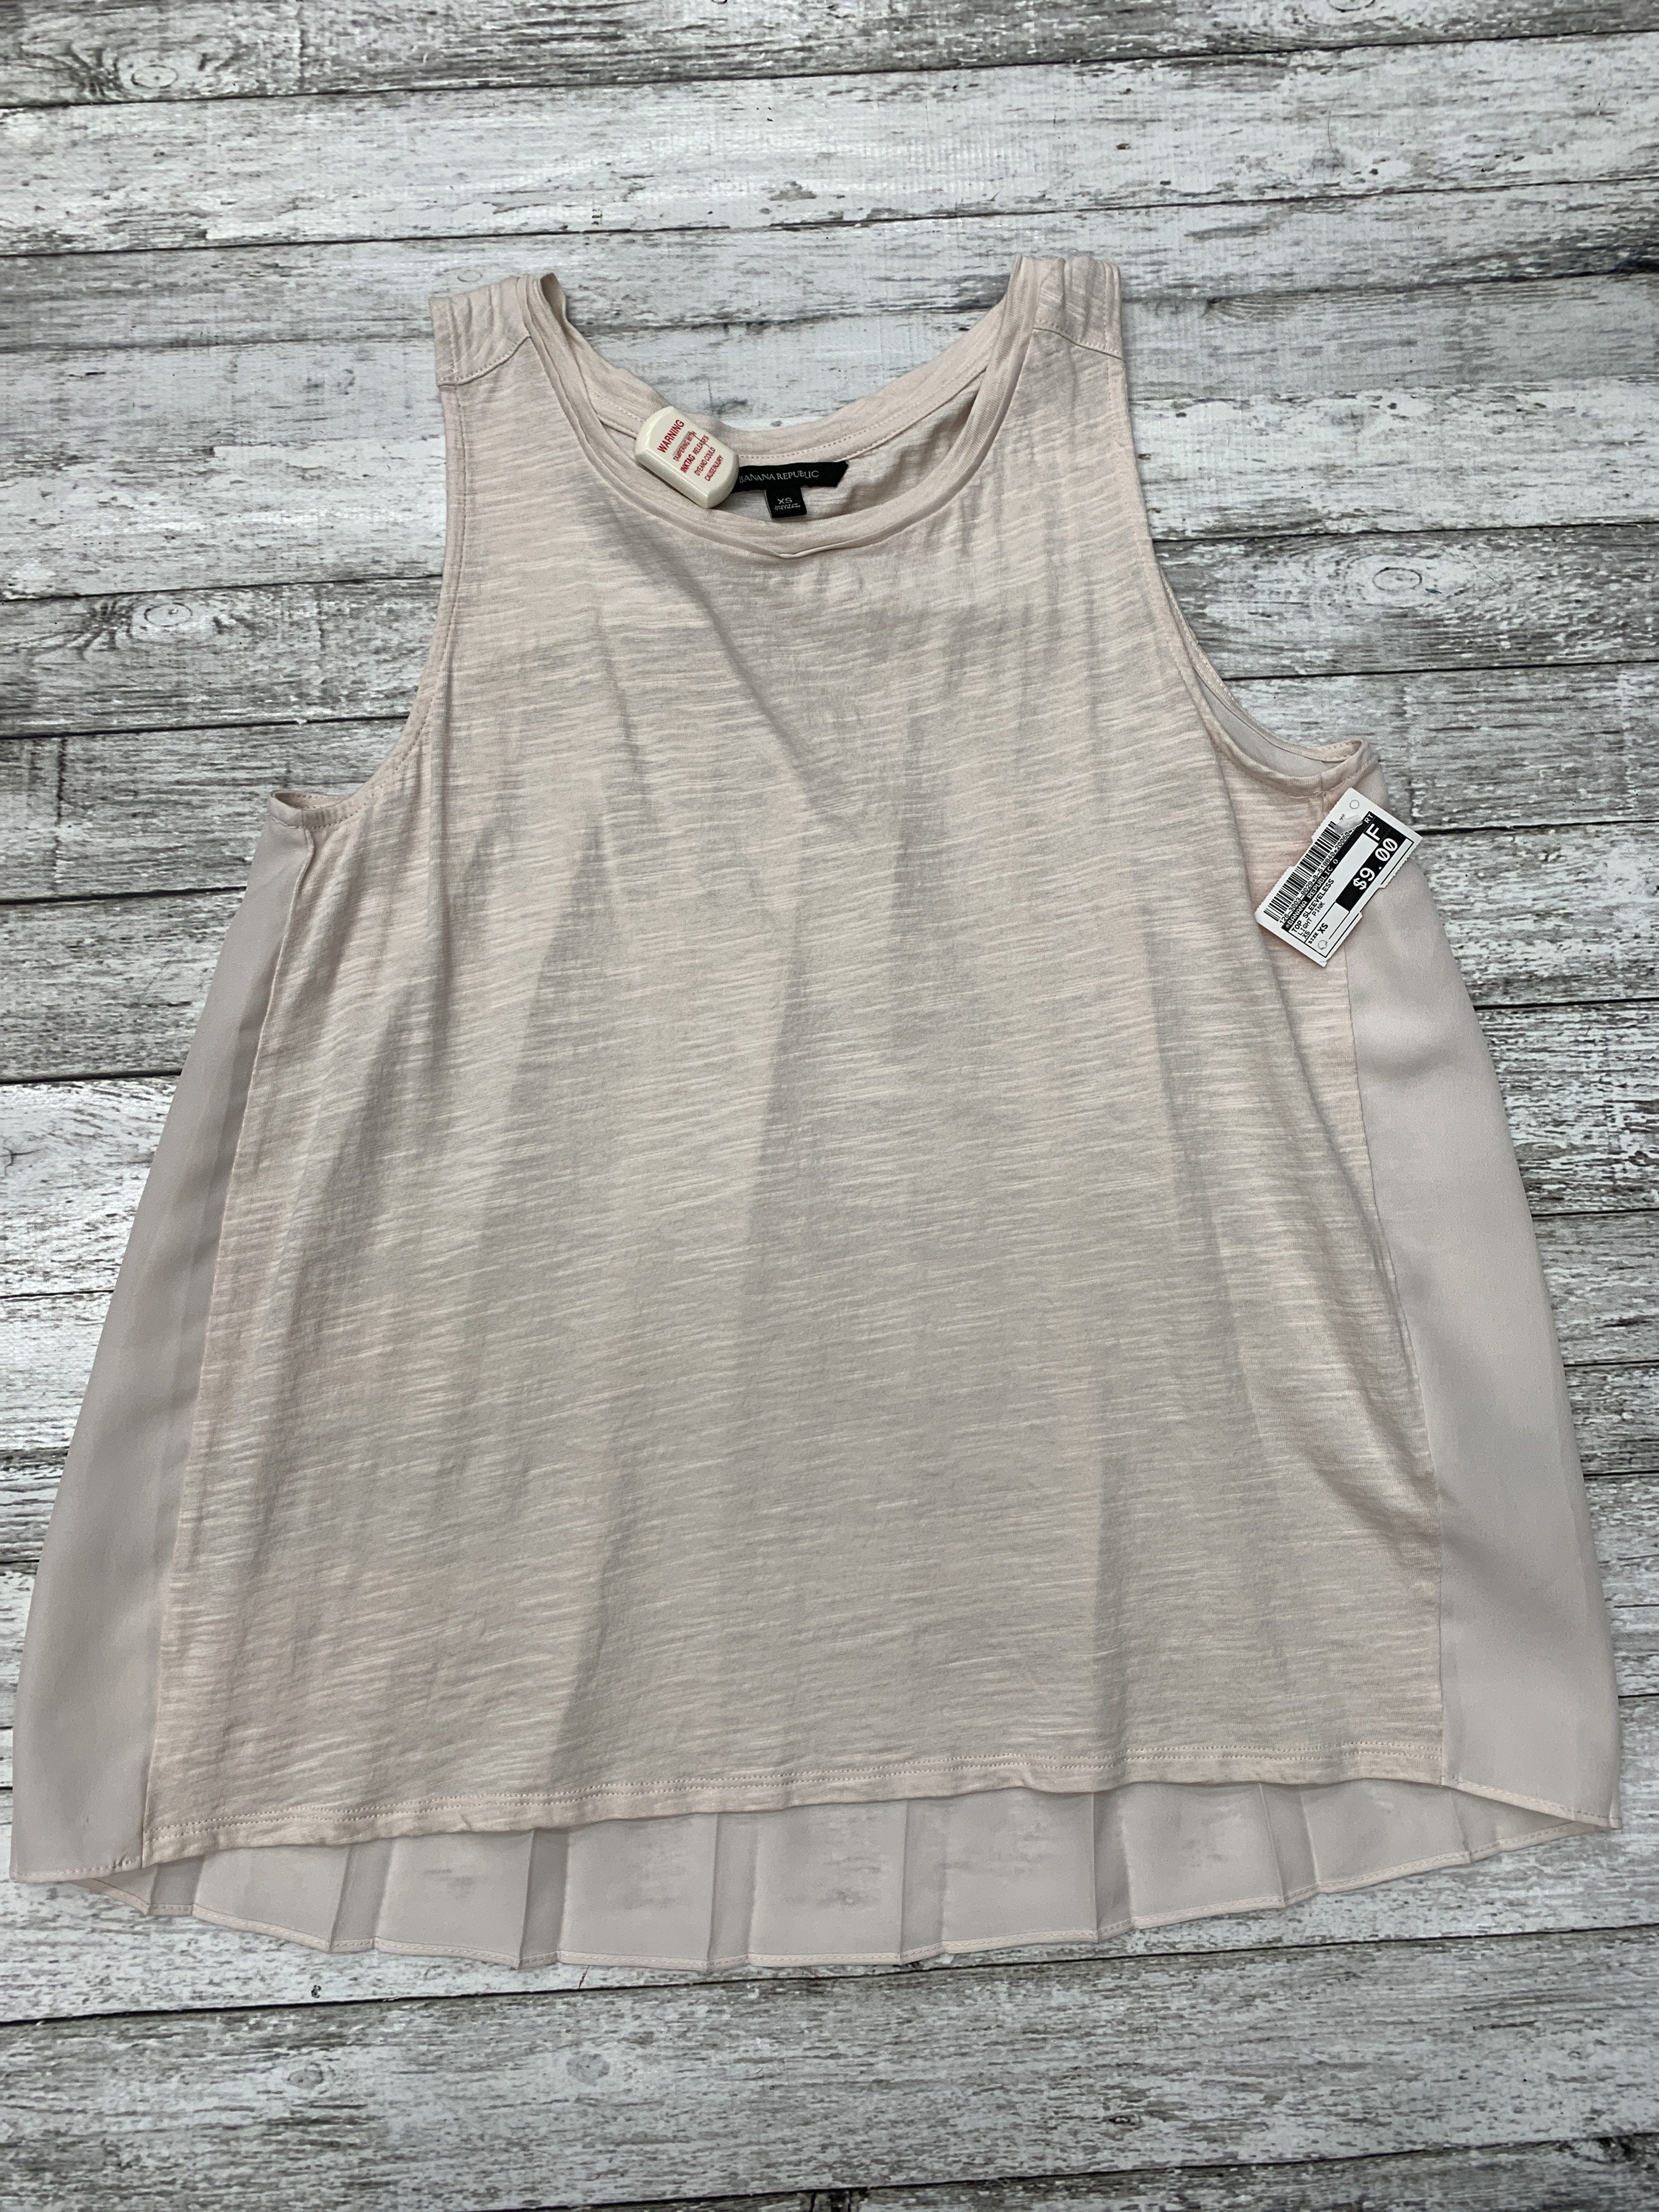 Primary Photo - brand: banana republic o , style: top sleeveless , color: light pink , size: xs , sku: 126-3003-8029